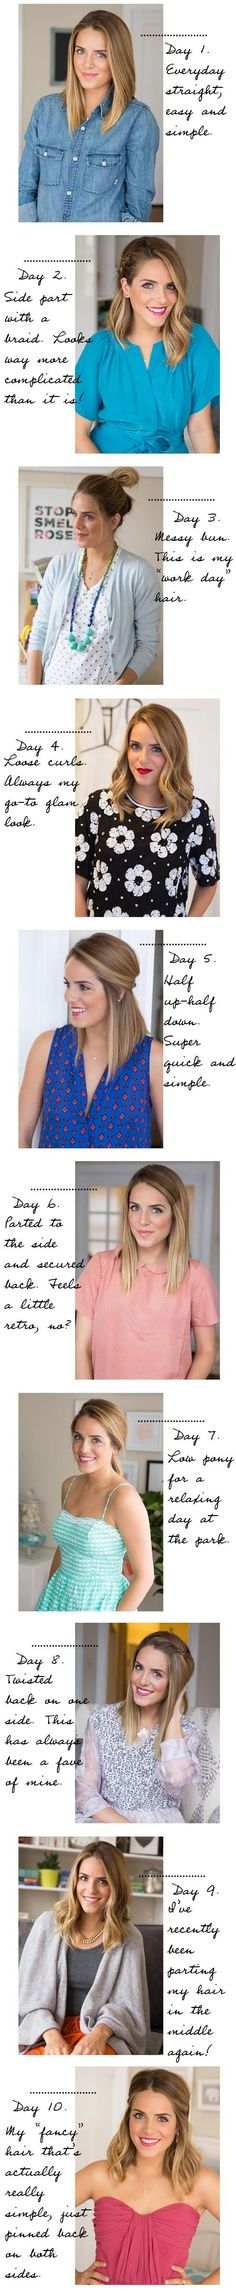 Try new hairstyles for summer - 10 super chic and pretty ways to wear your